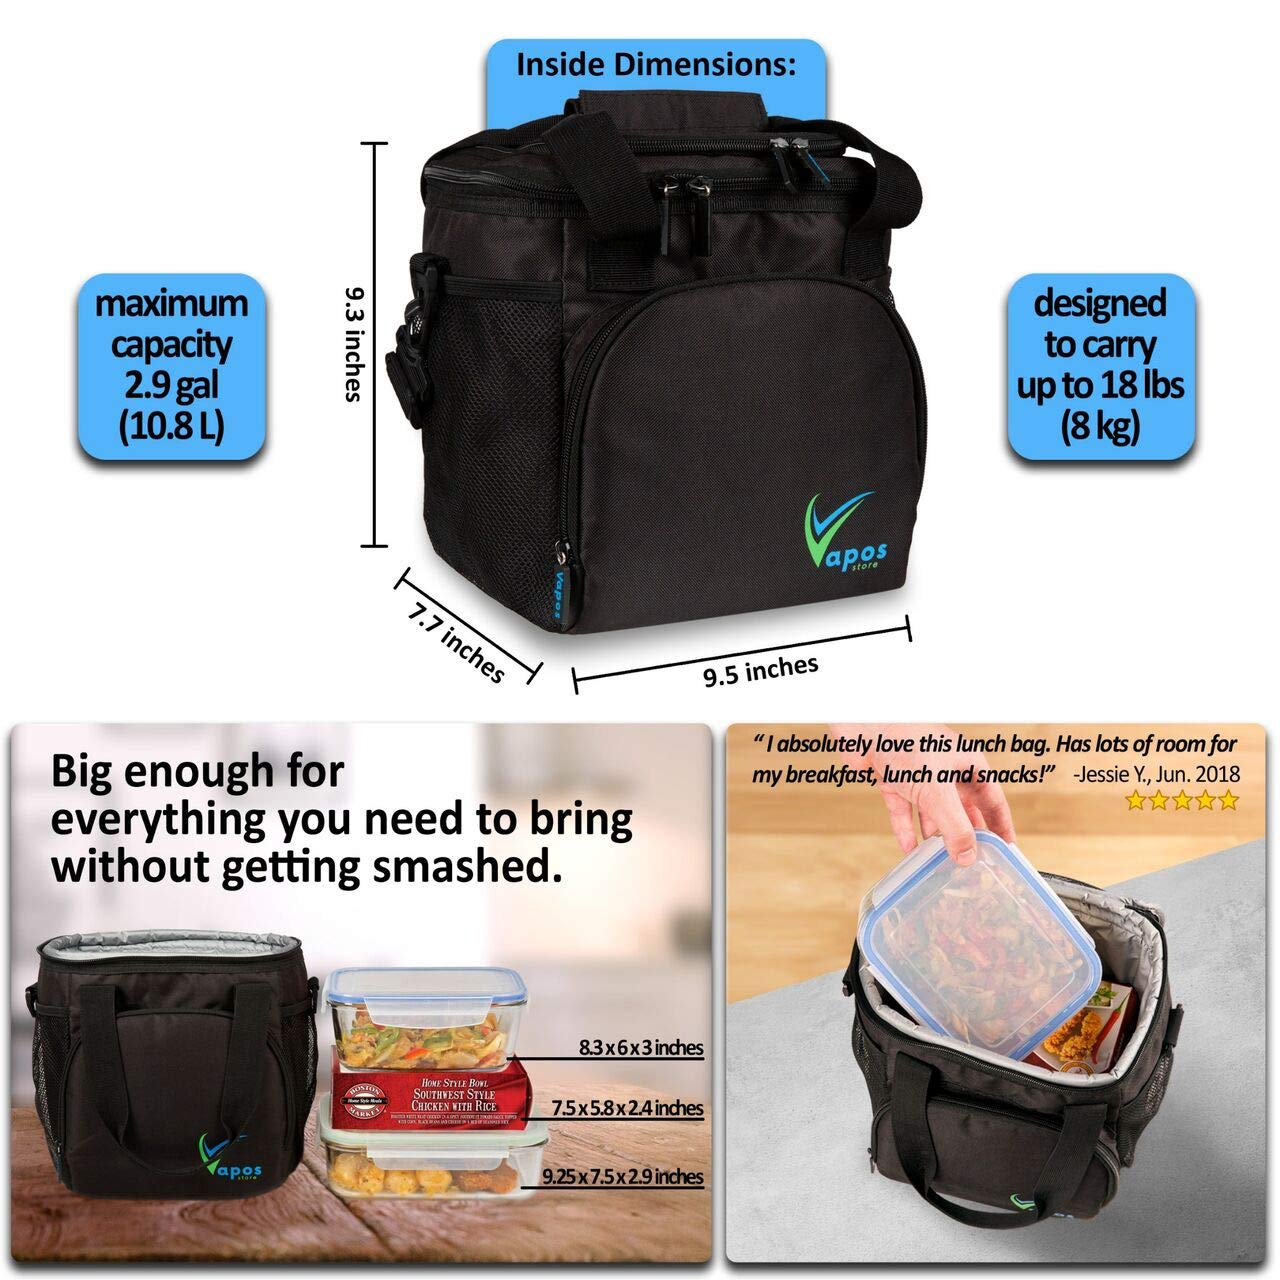 5926311cb3 Amazon.com  Large Insulated Lunch Bag for Men and Women with Room for More  Meals and Snacks. Keeps Food Hot Cold for 8h. Functional Lunch Box for  Adults ...